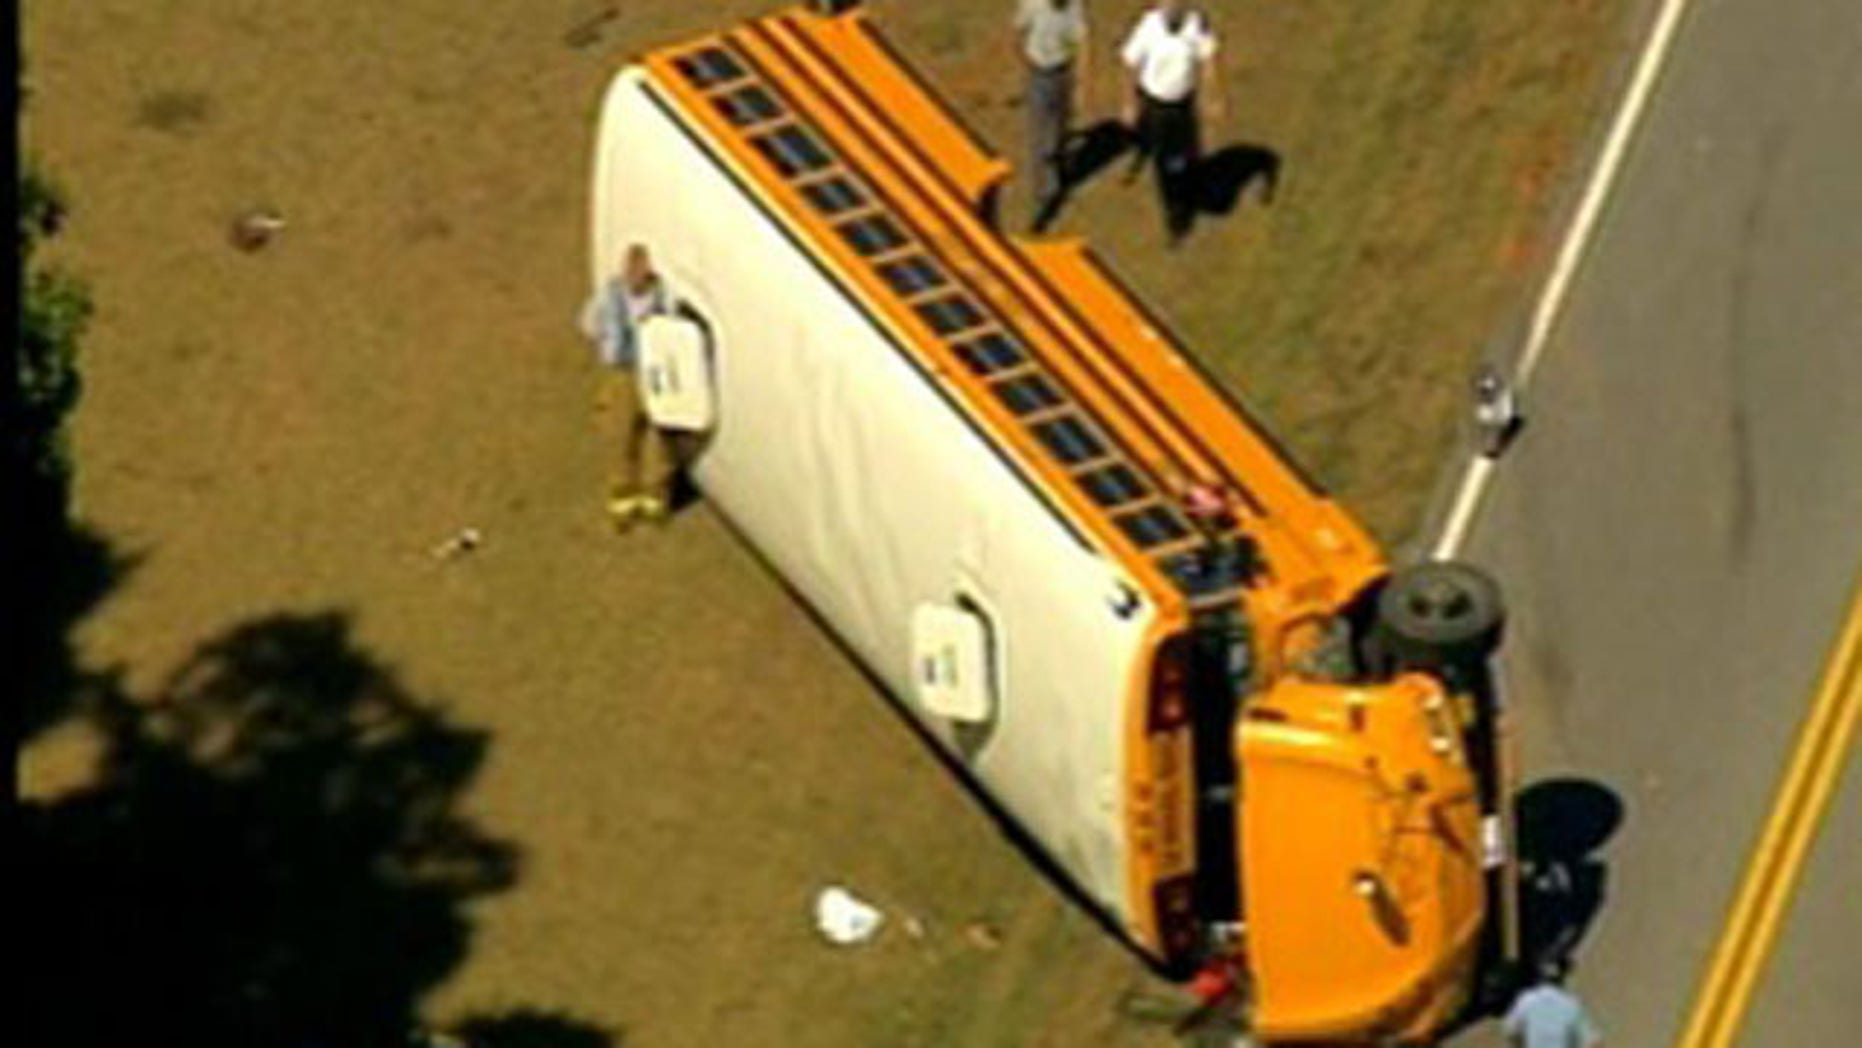 Oct. 4: A school bus accident in Georgia leaves one person dead.